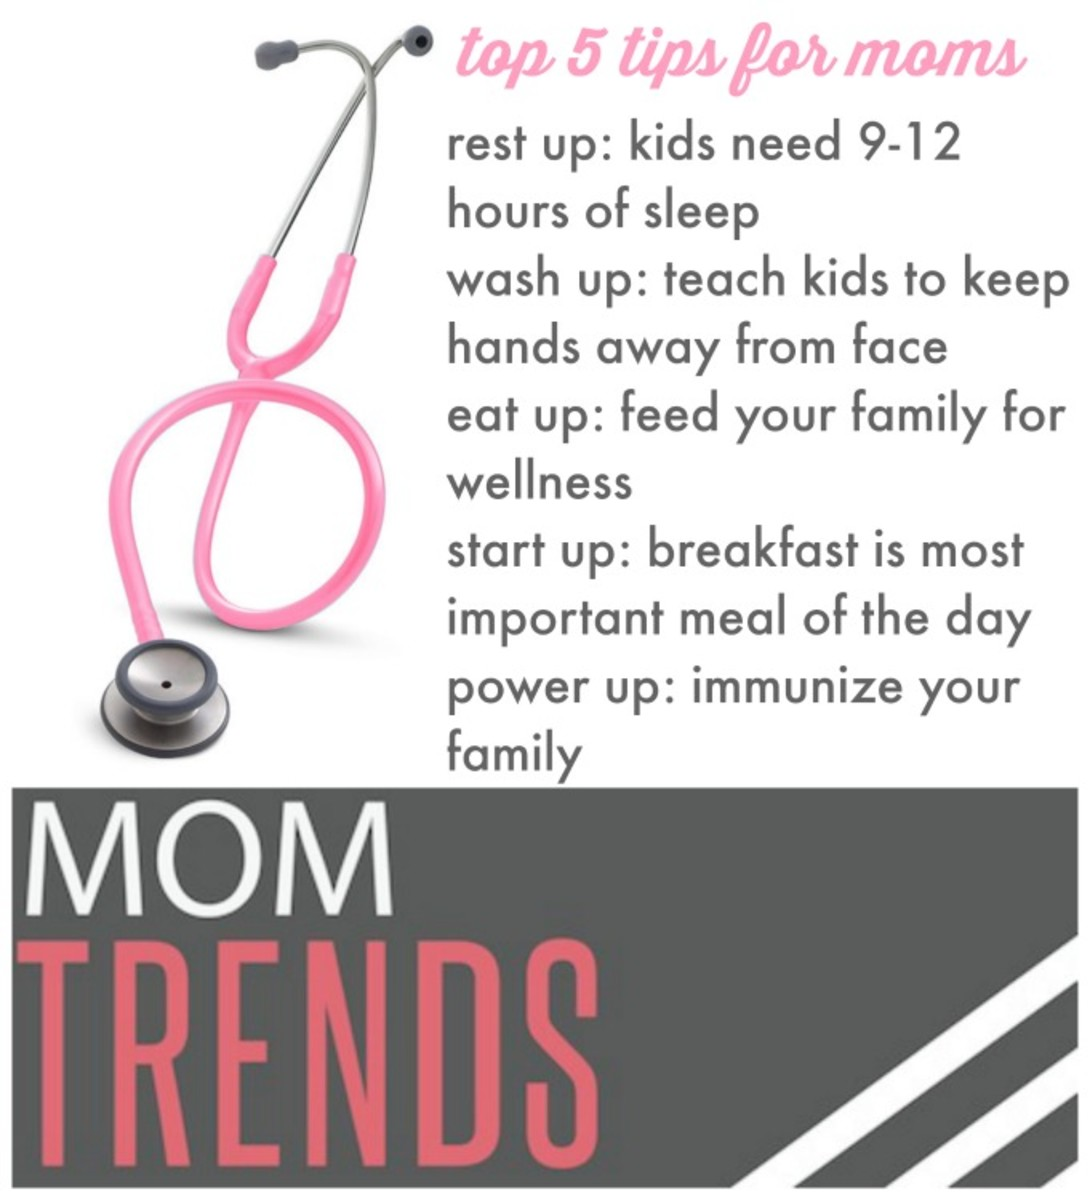 health tips for moms